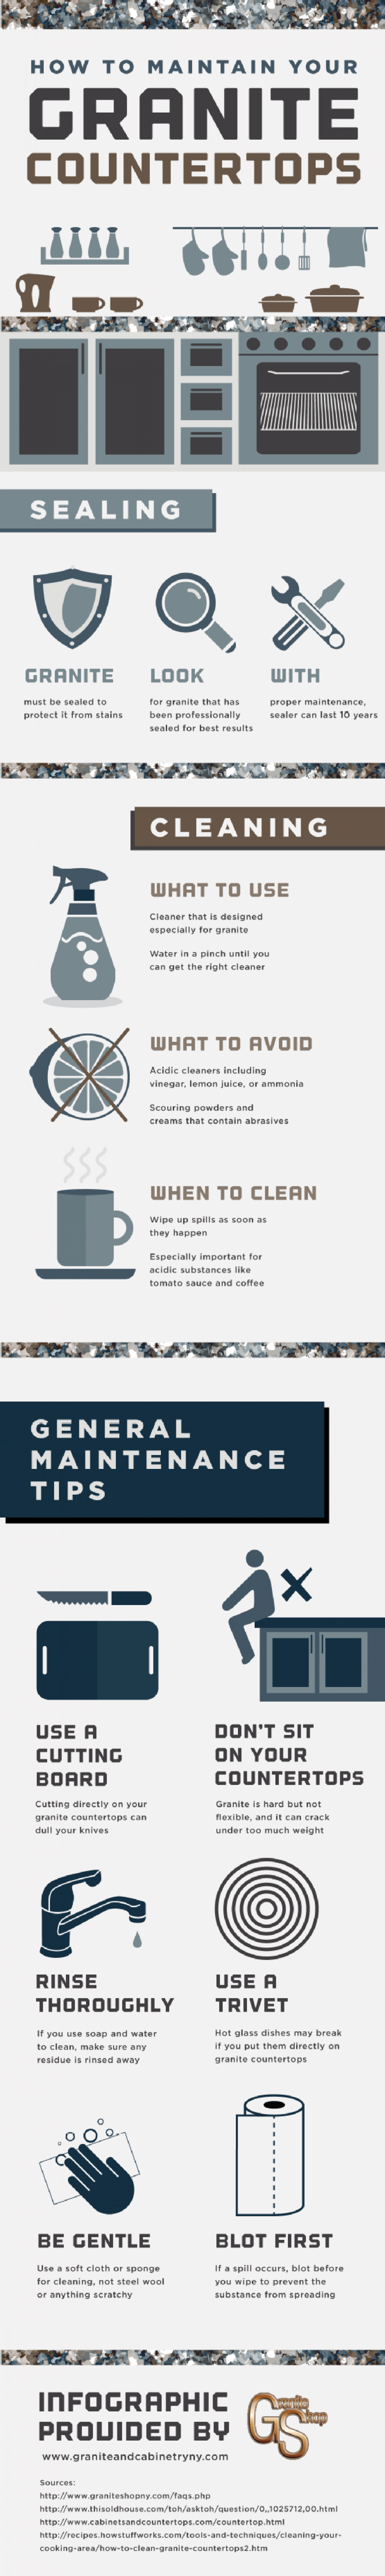 How to Maintain Your Granite Countertops Infographic